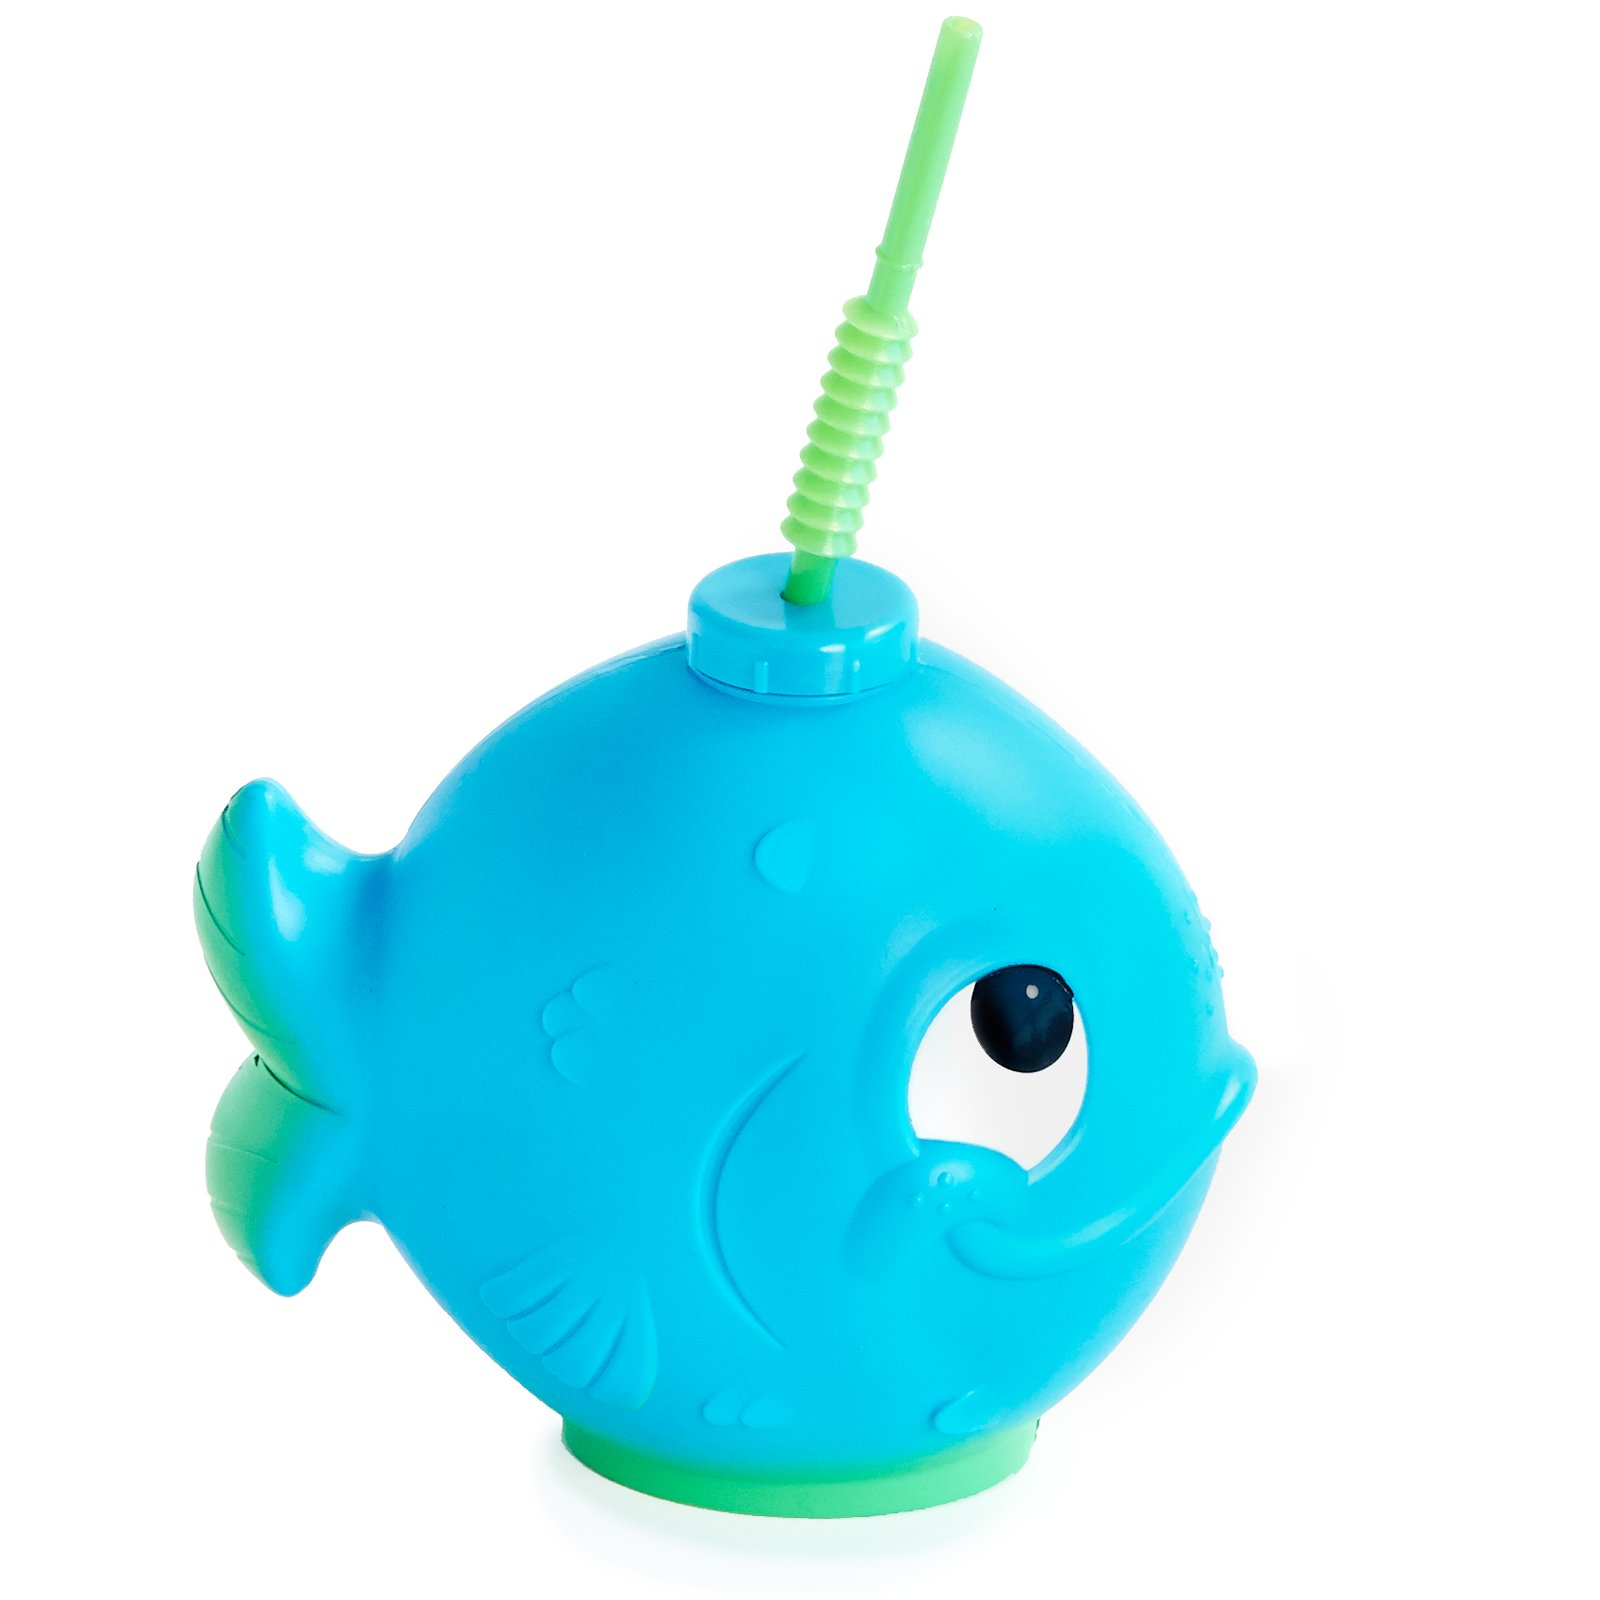 Under The Sea Ocean Childrens Birthday Party Supplies - Blue Whale Fish Plastic Sippy Cup with Straw (8)